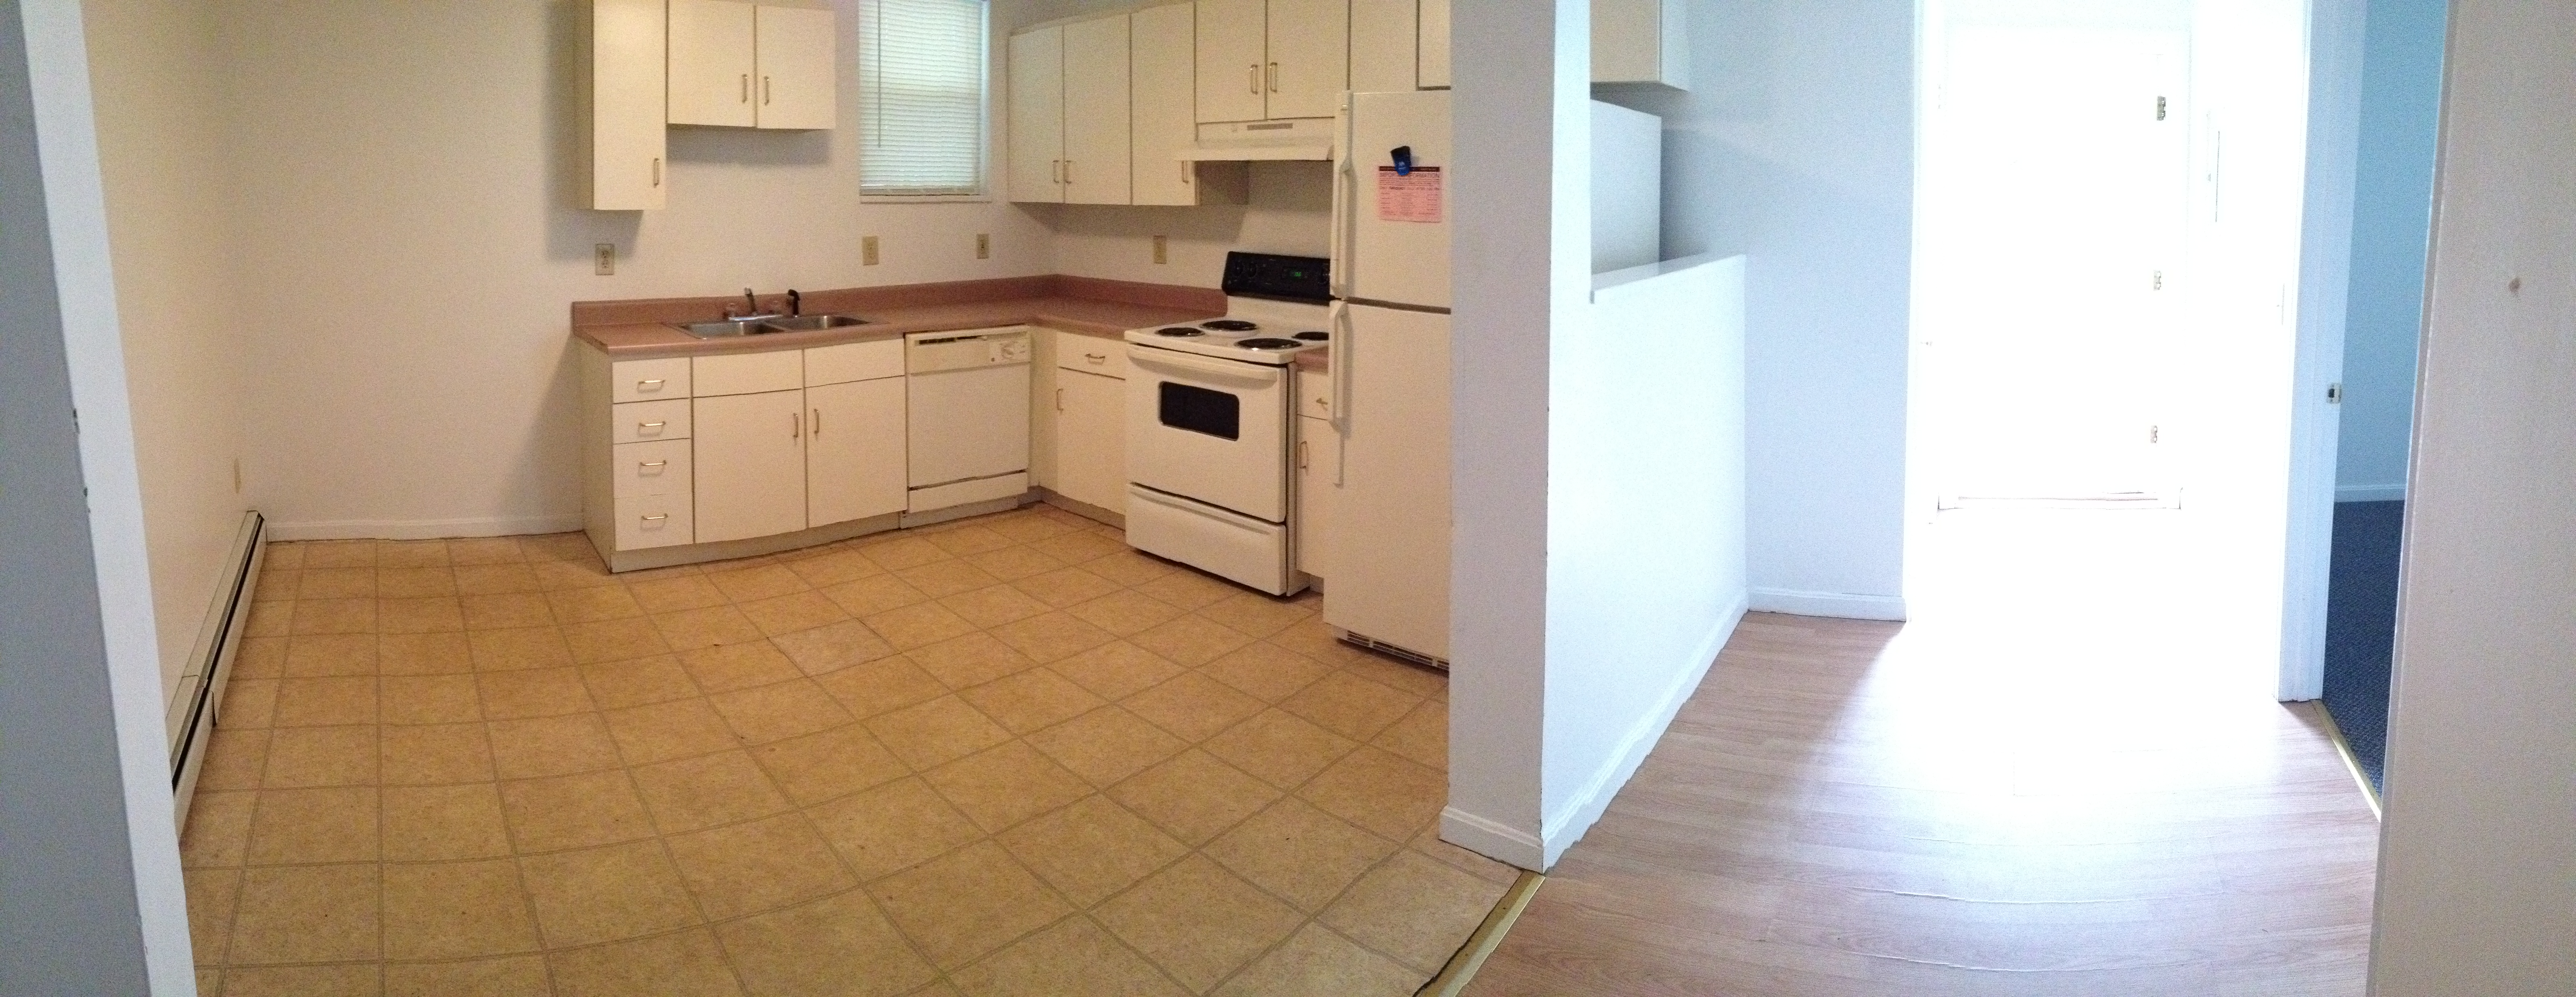 Apartments For Rent In Wells Maine